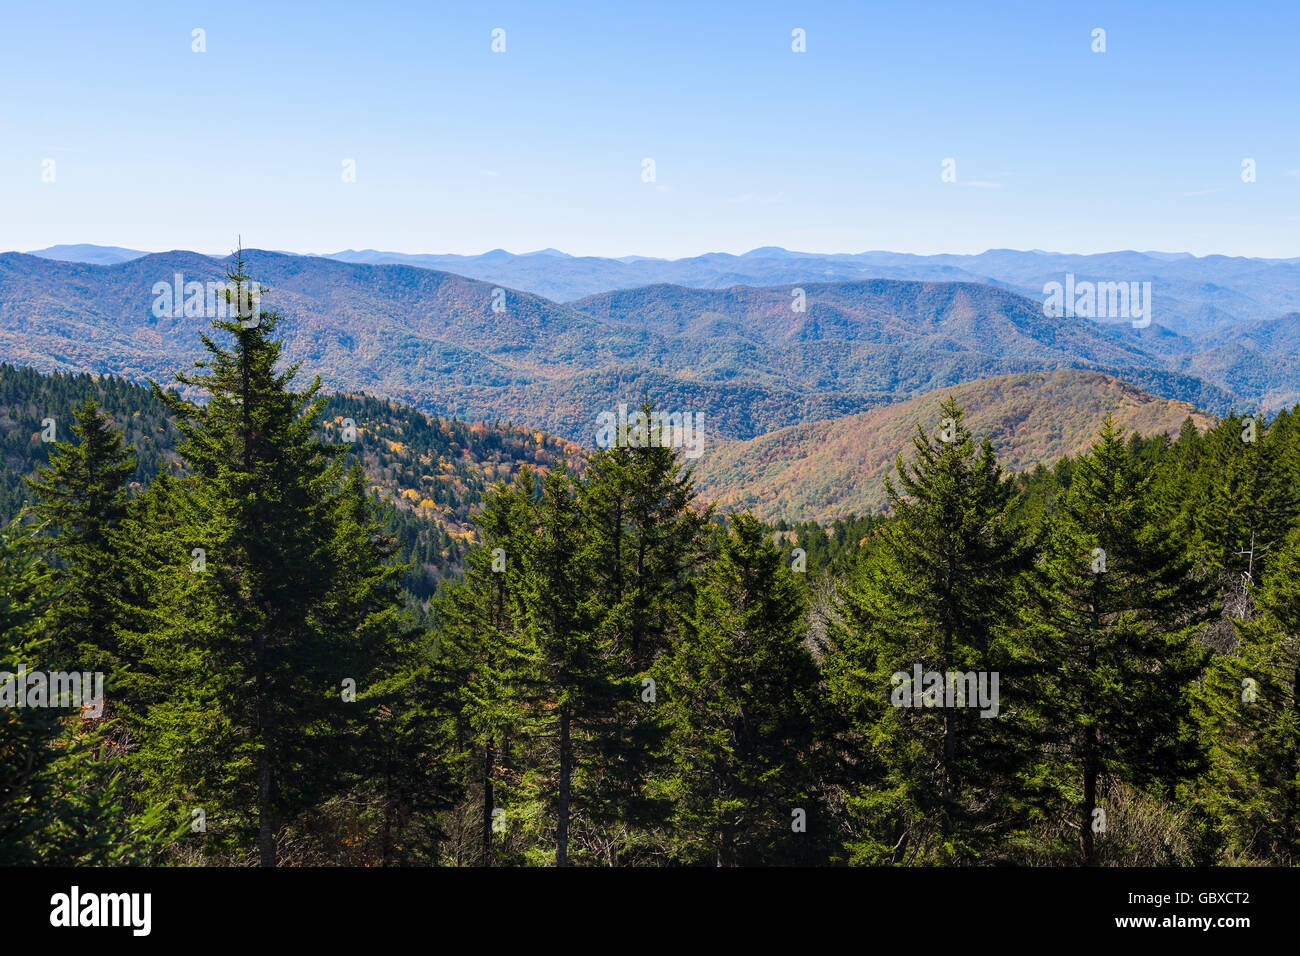 Mountain view highest elevation on Blue Ridge Parkway road, Asheville, NC, USA - Stock Image